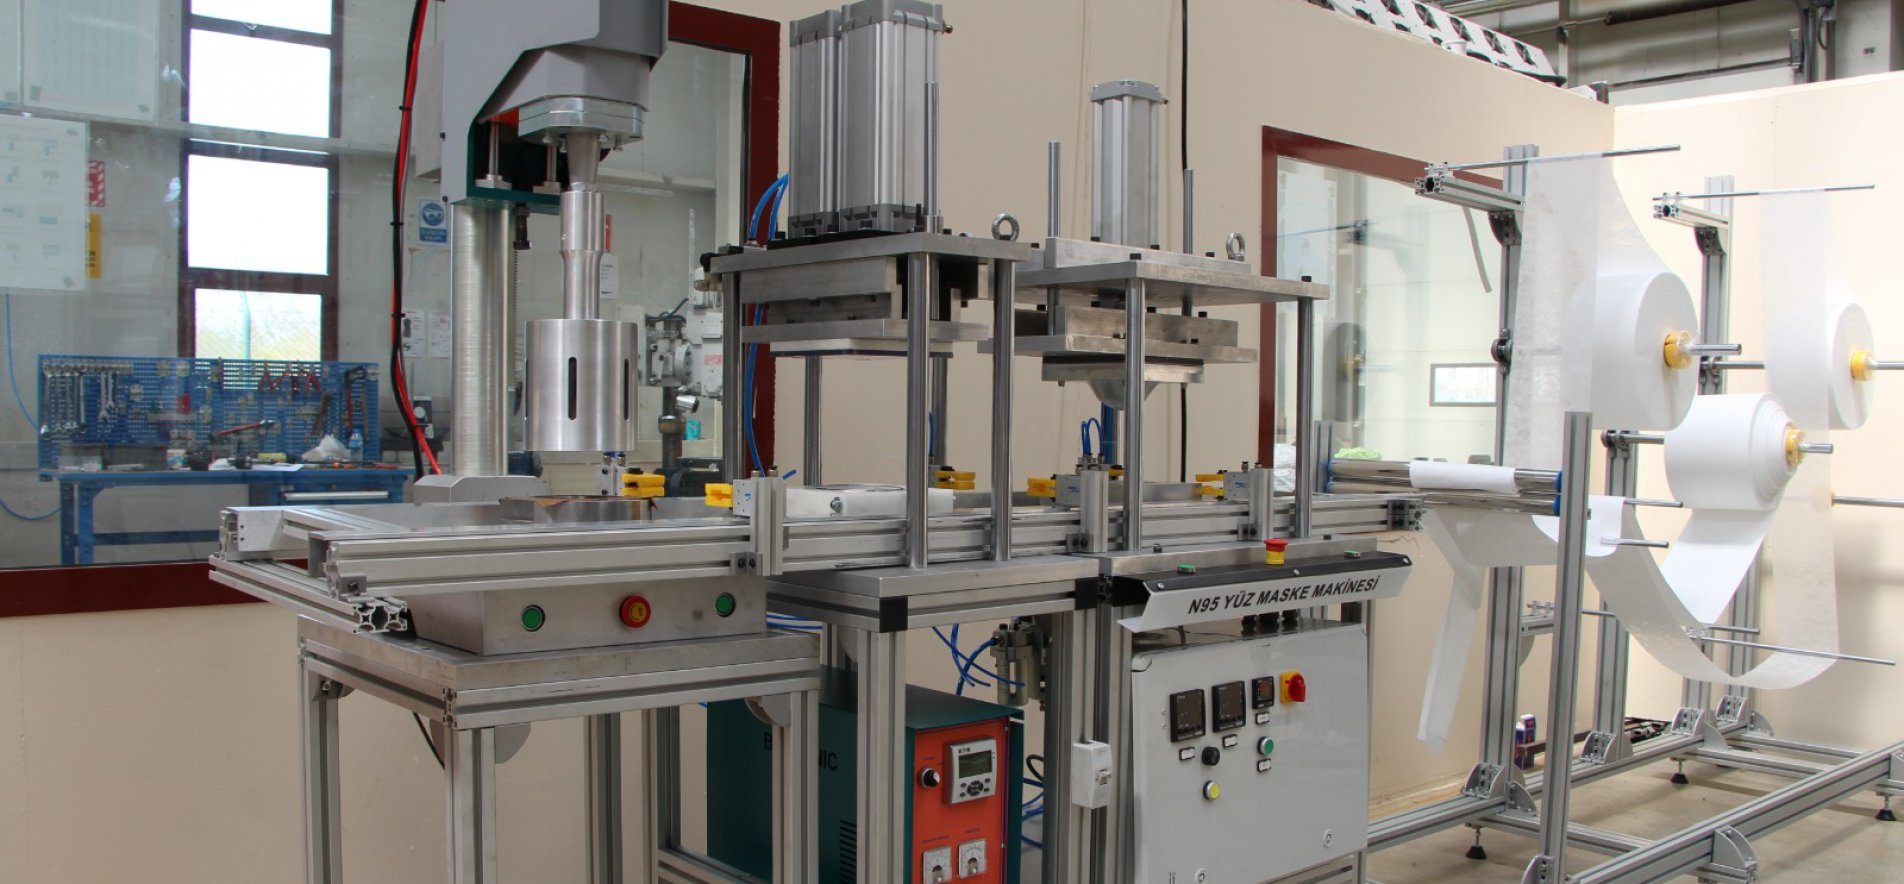 LONG AWAITED GOOD NEWS FROM VOCATIONAL SCHOOLS: THEY PRODUCED THE N95 STANDARD MASK MACHINE